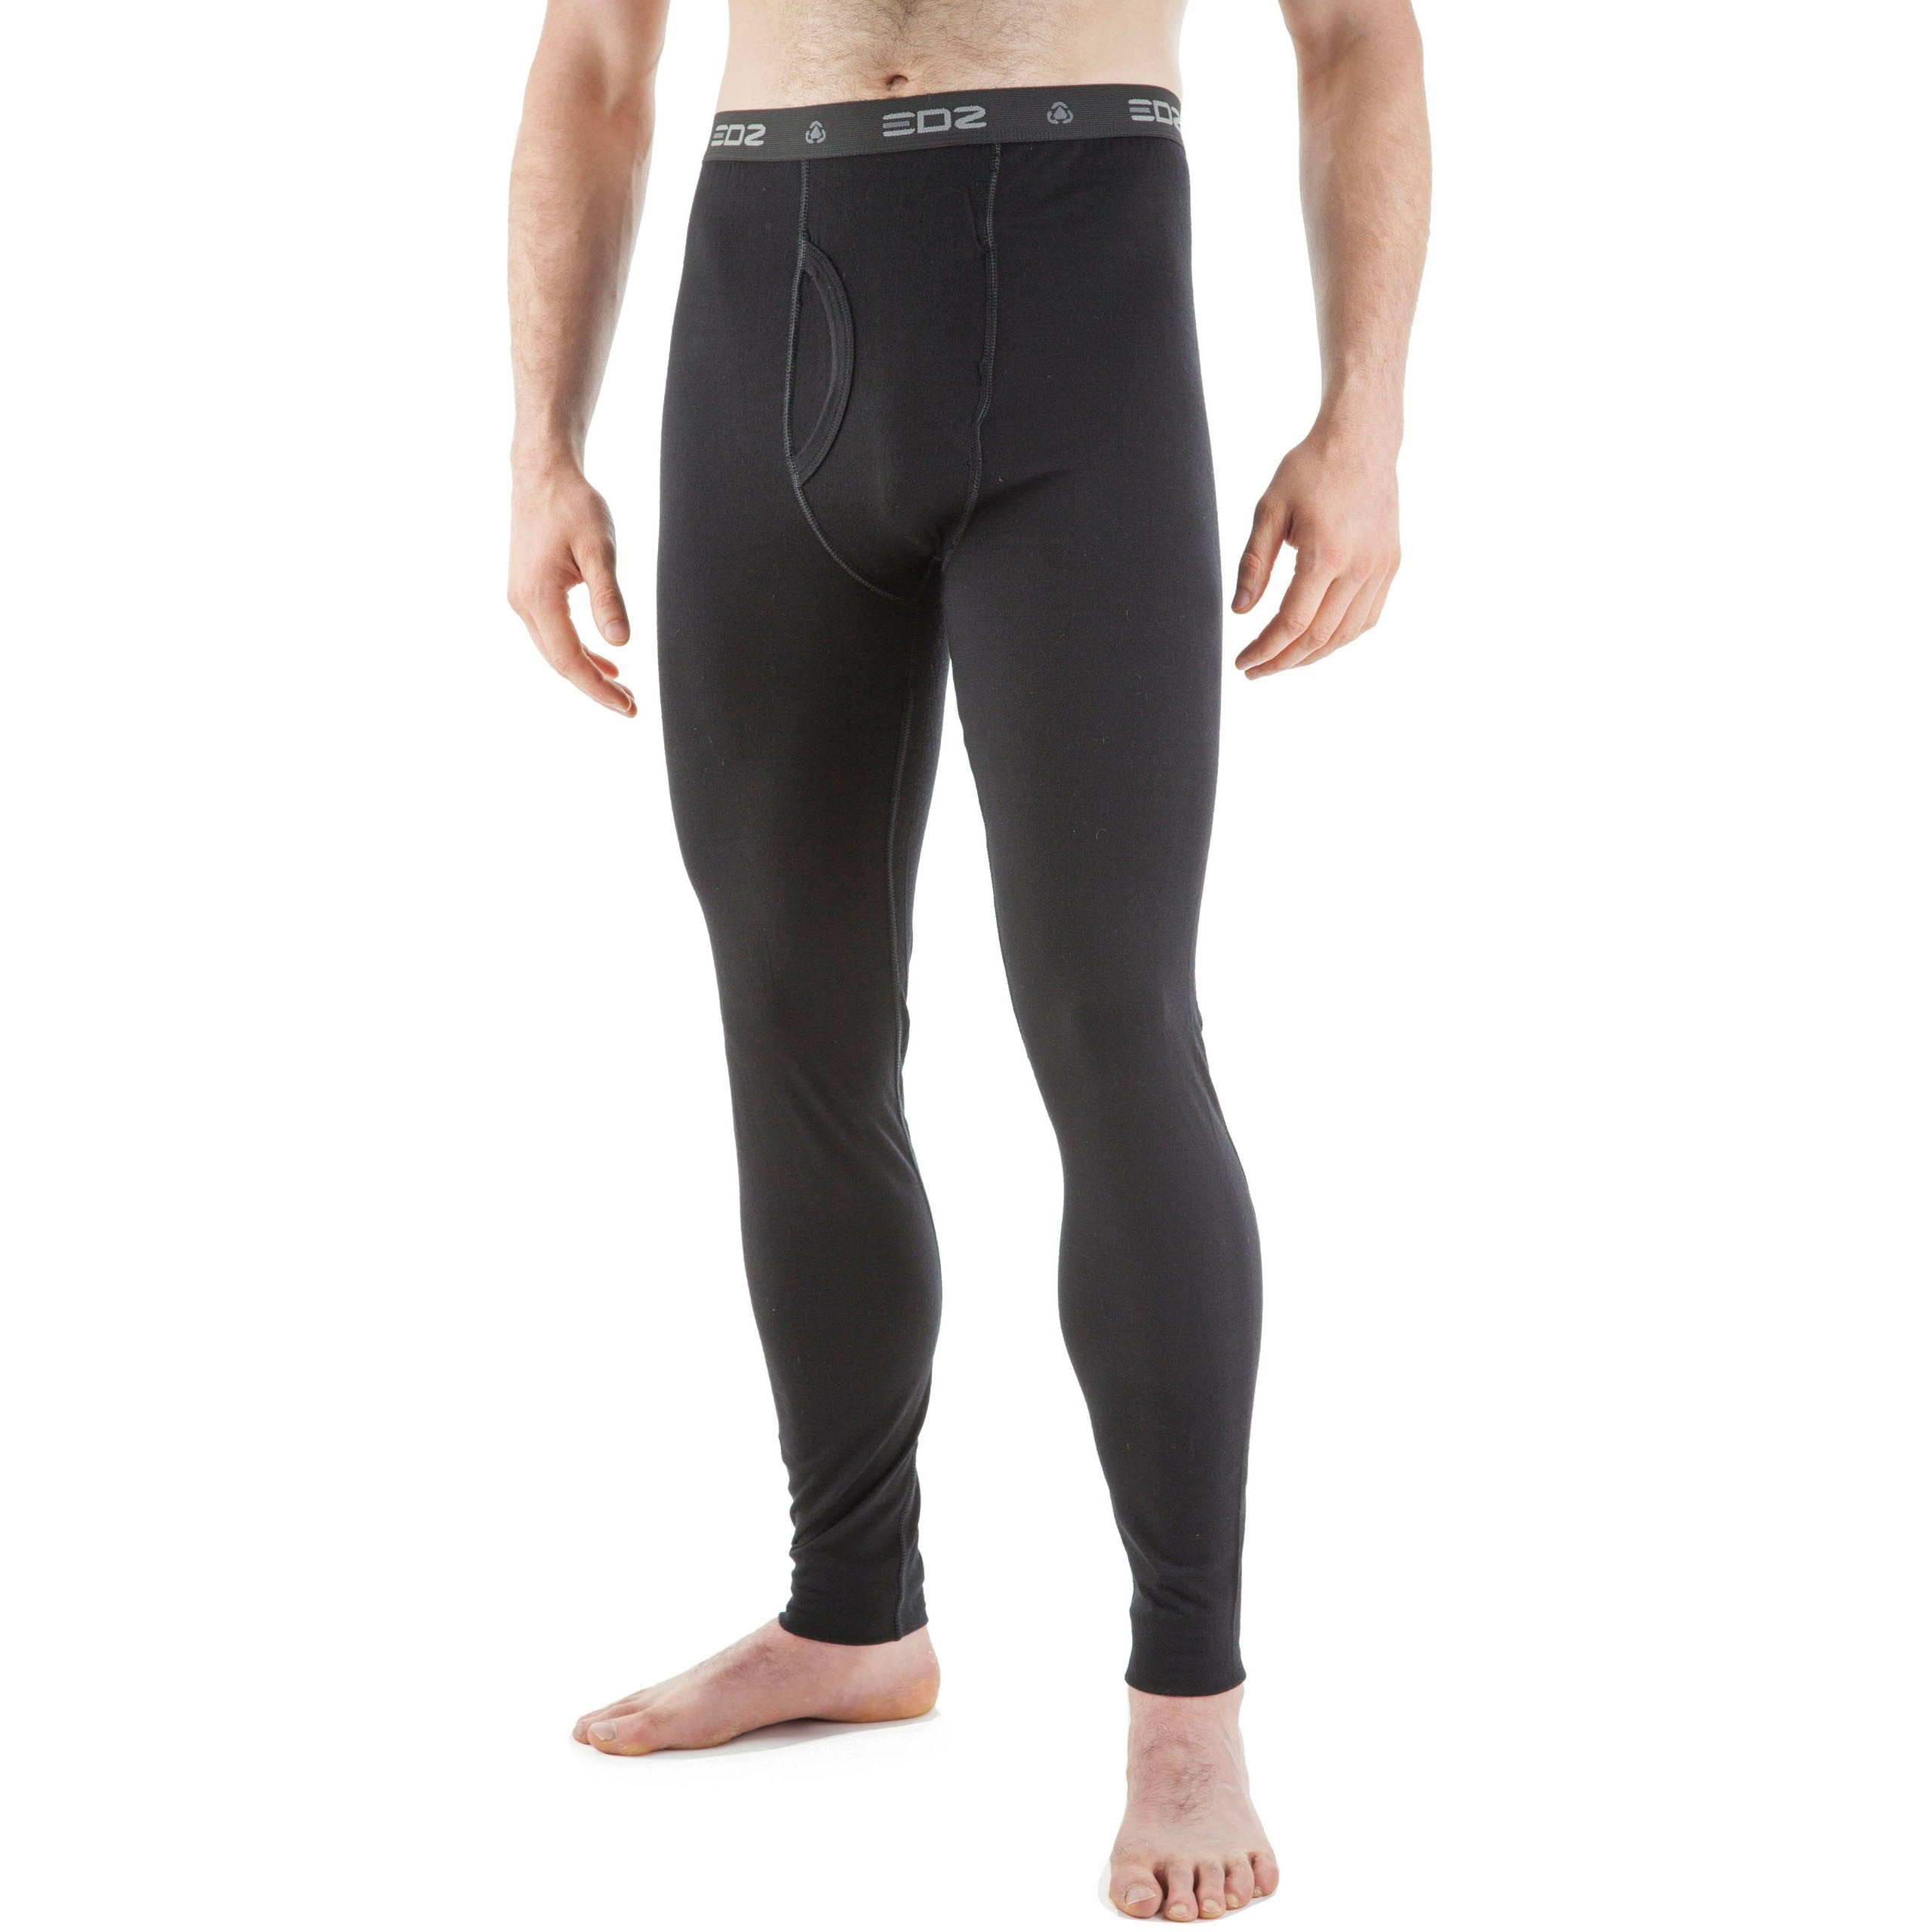 collections/Men_s_Merino_Leggings_Black_162c2b51-58d6-46b5-be8e-23244793e361.jpg